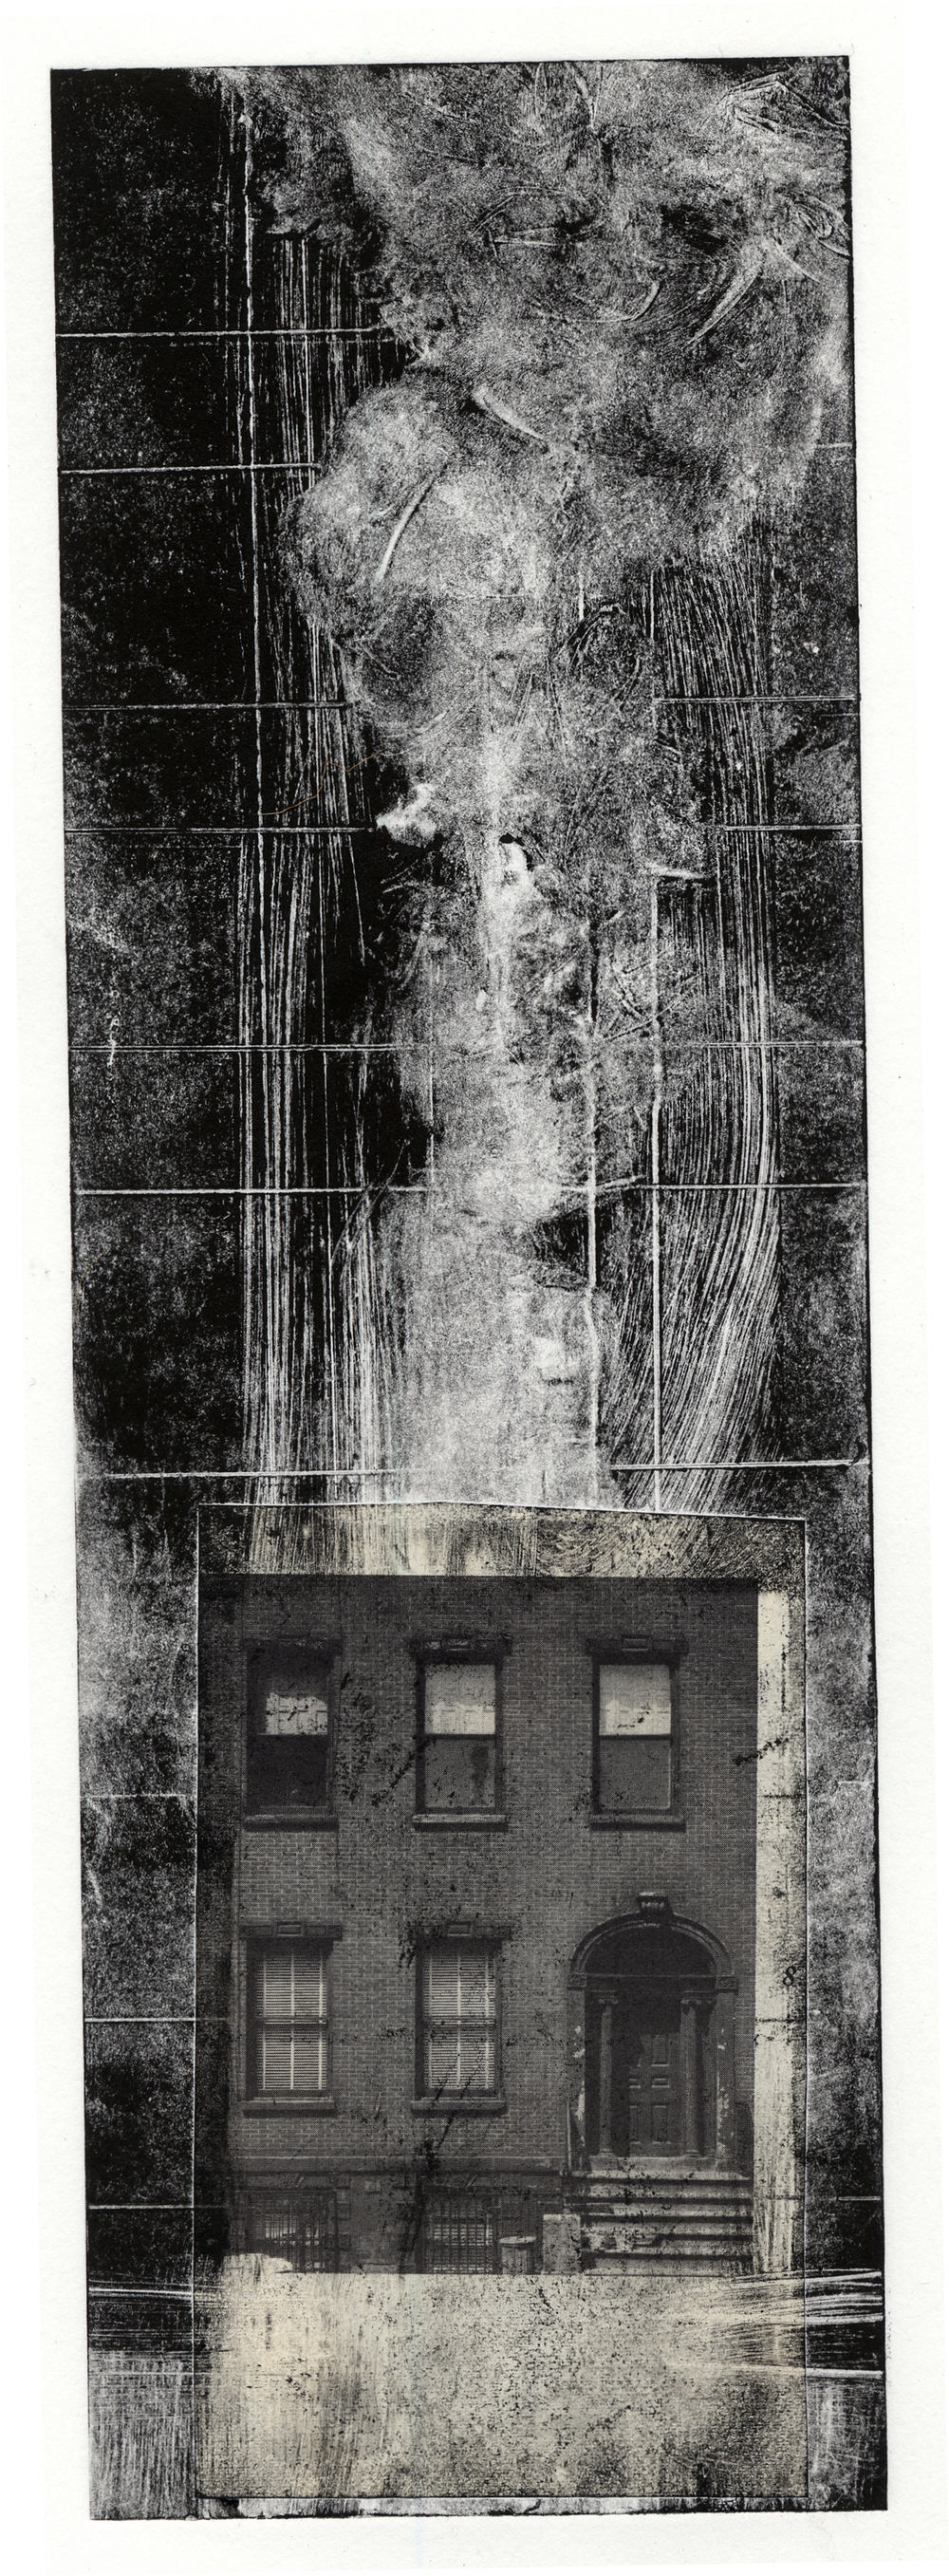 A monotype print with collage elements from Clive Knights' dwelling studies